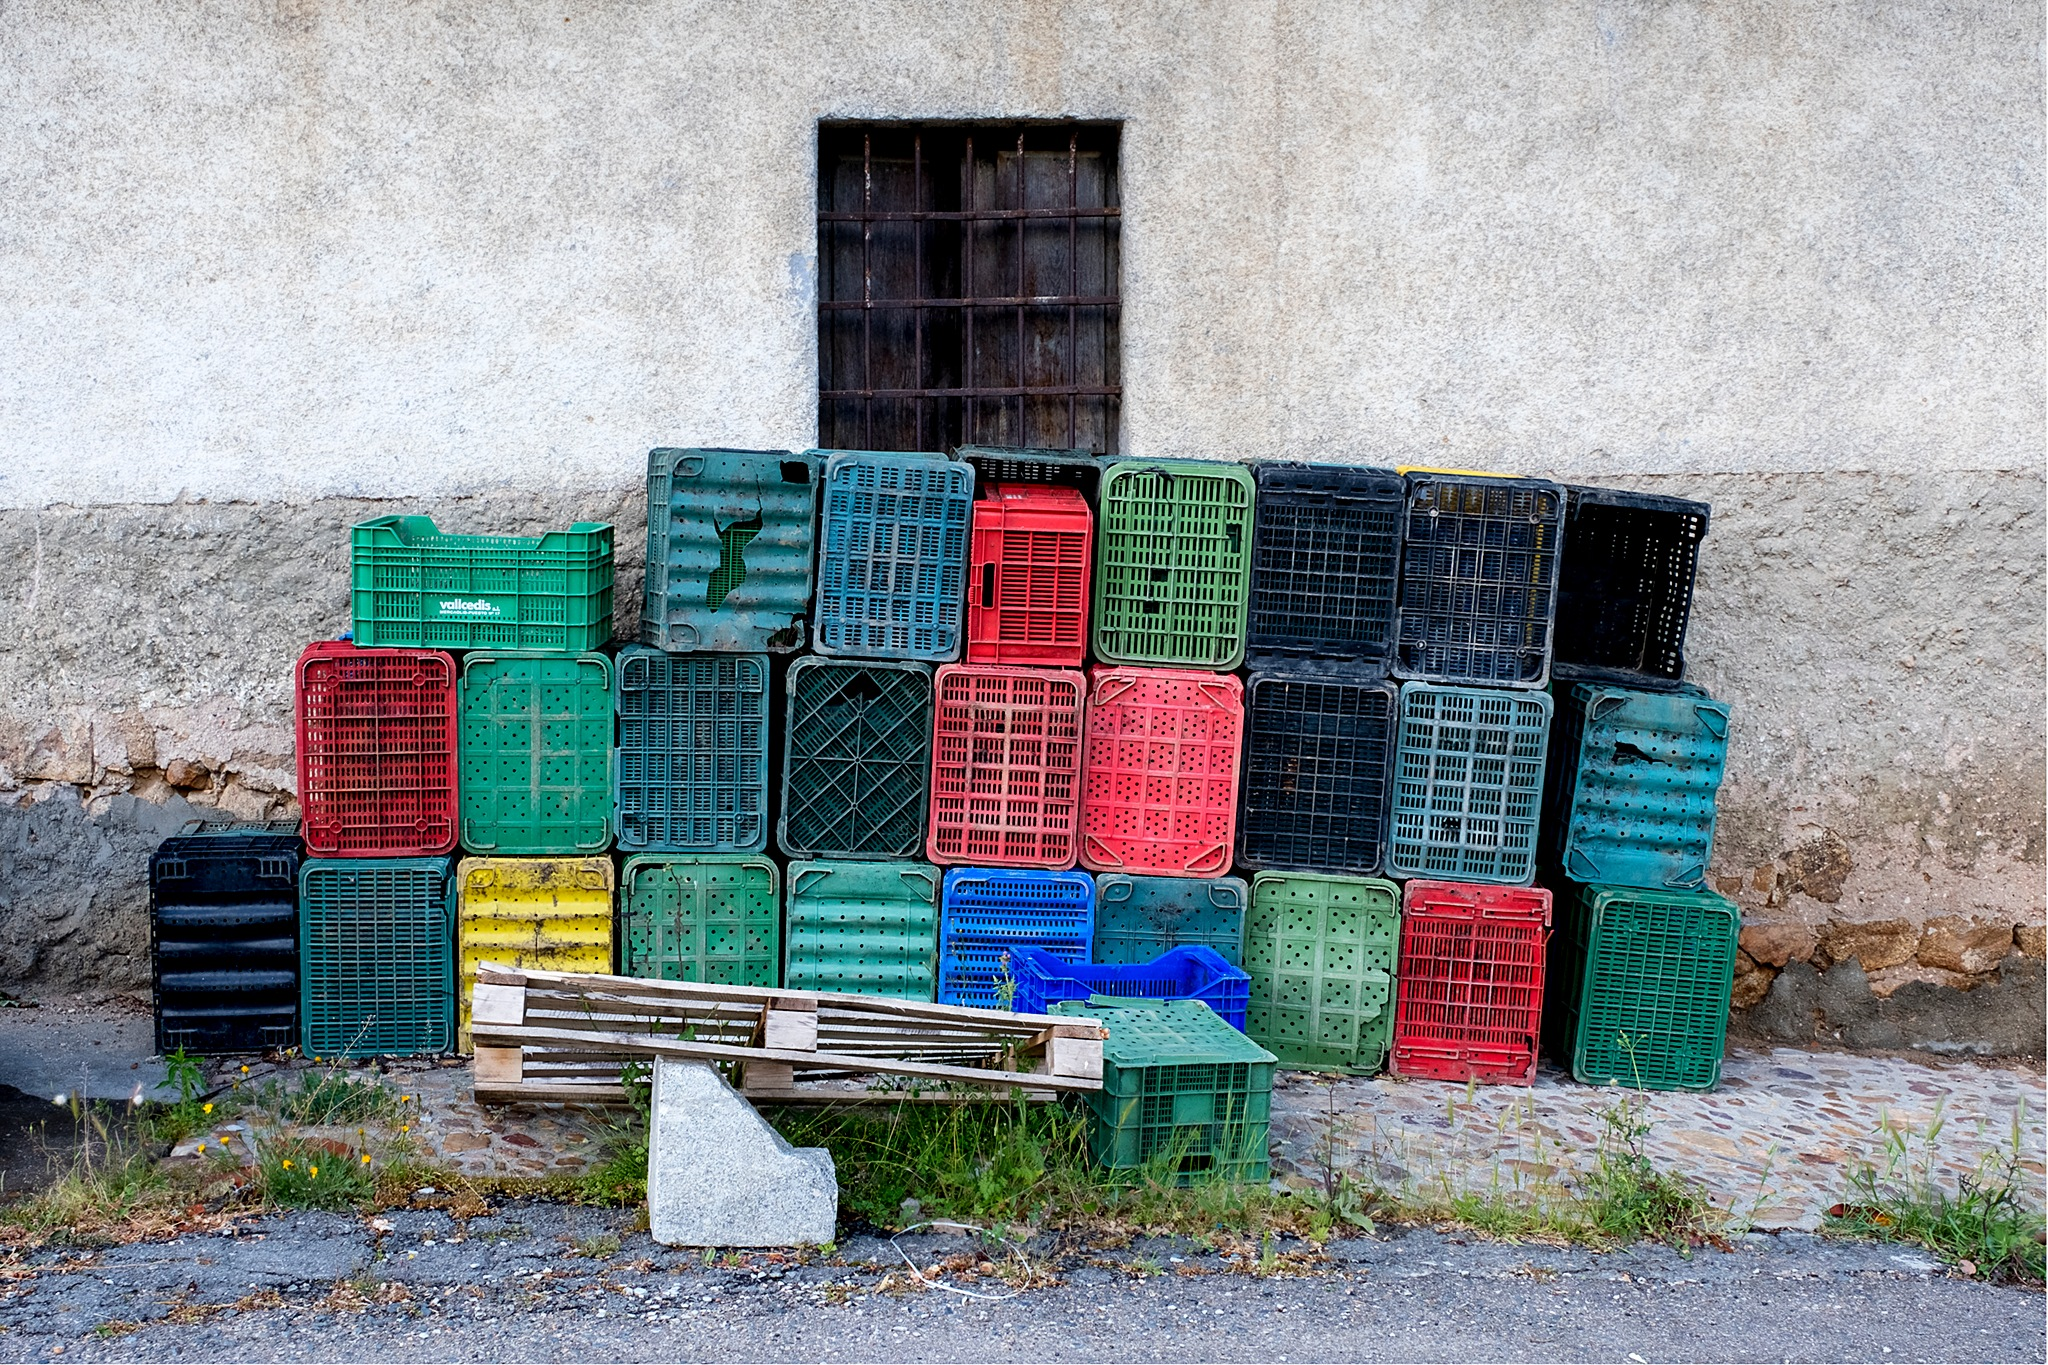 Plastic wall. by mster00